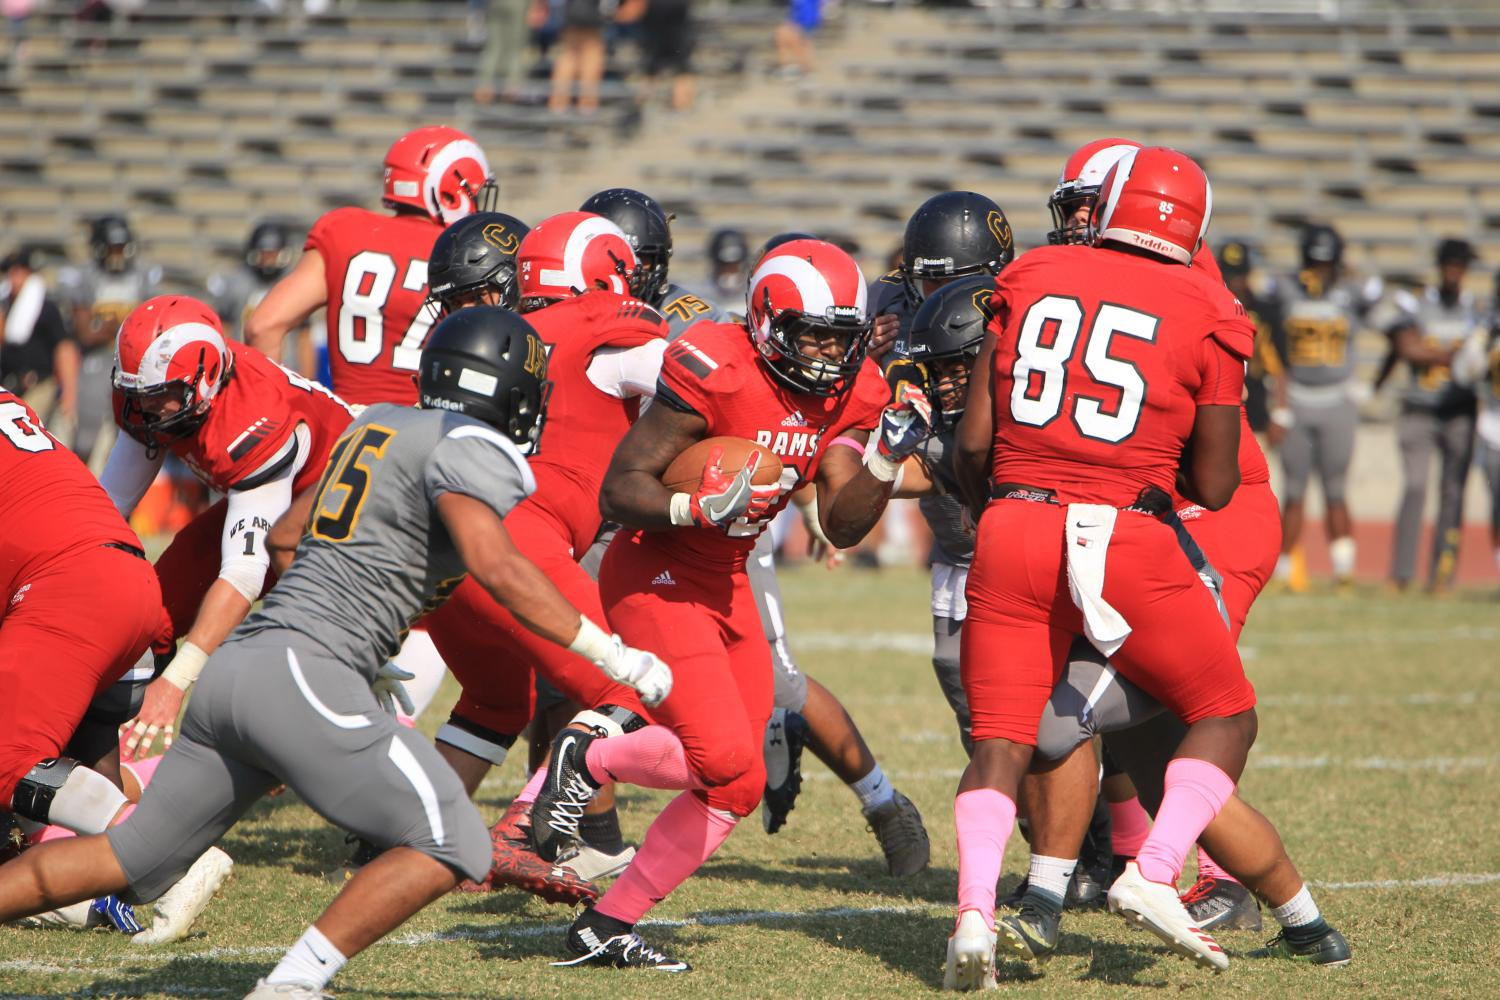 Fresno City College running back Khai Williams gets through the Chabot College's defensive line during homecoming game at Ratcliff stadium on Saturday, Oct. 14, 2017.